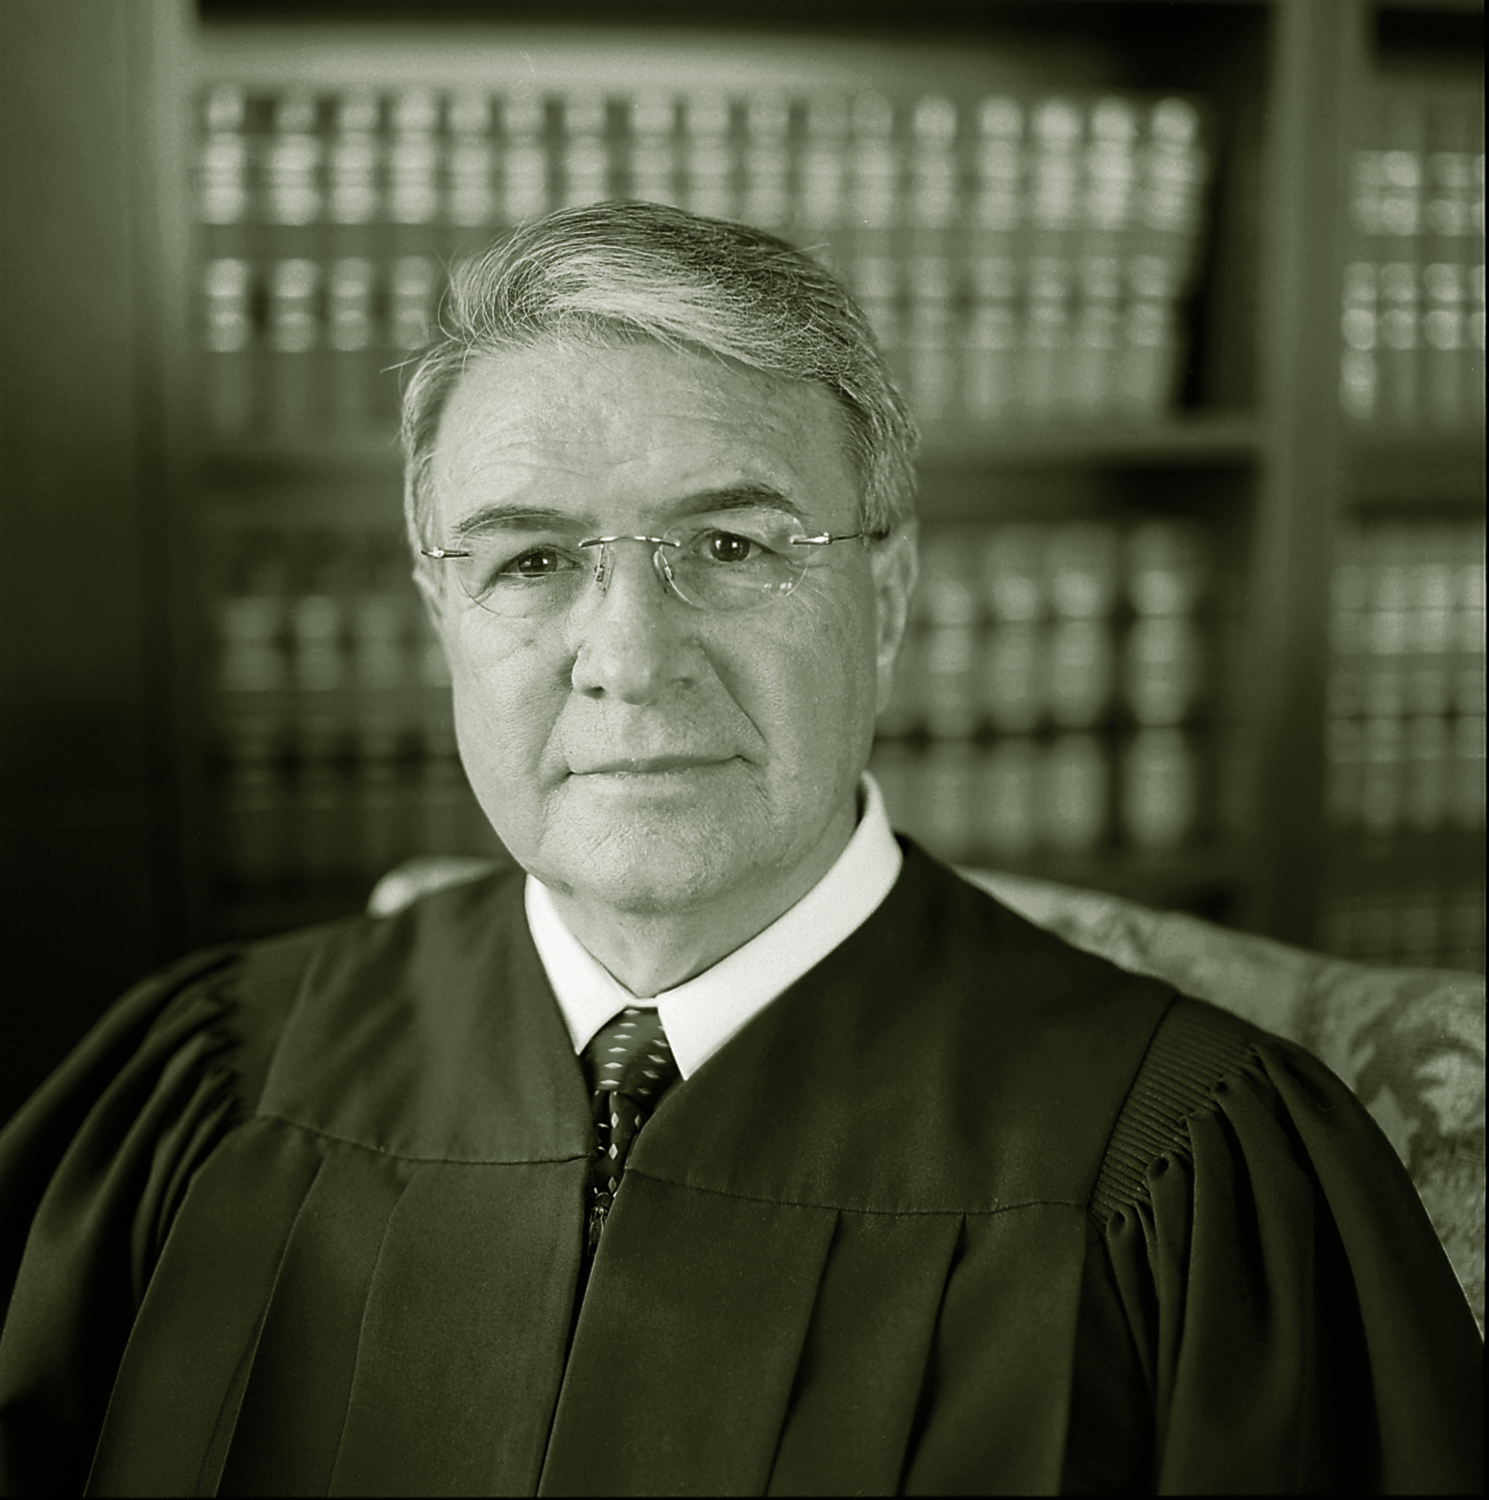 Judge Roger L. Hunt